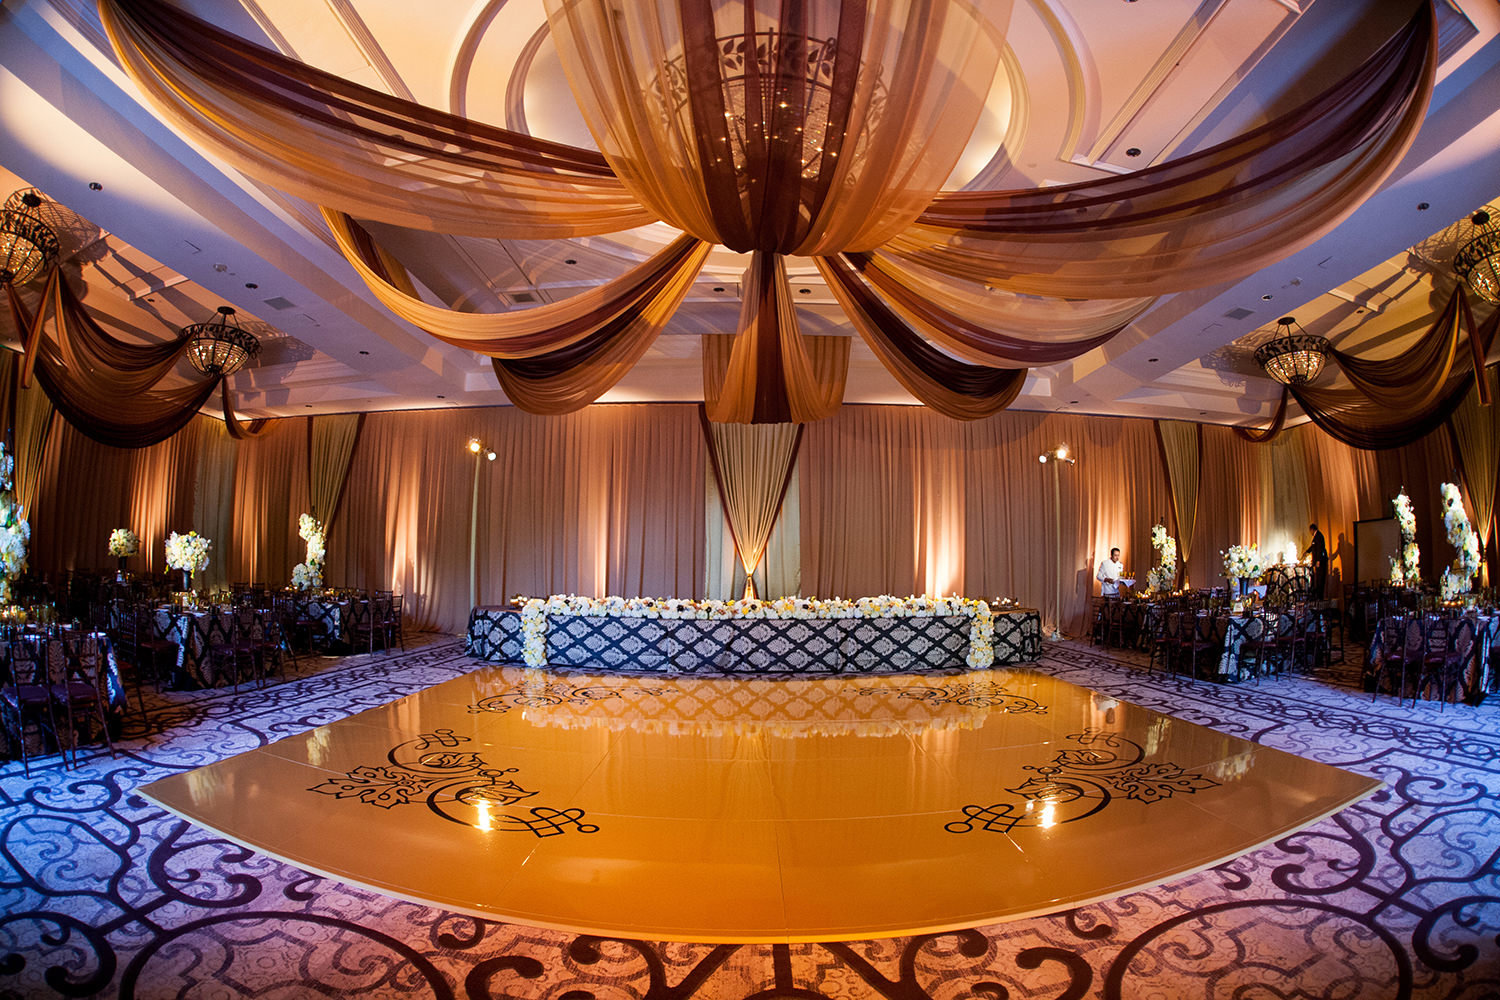 Rich colors and uplighting set a stunning scene for this wedding reception